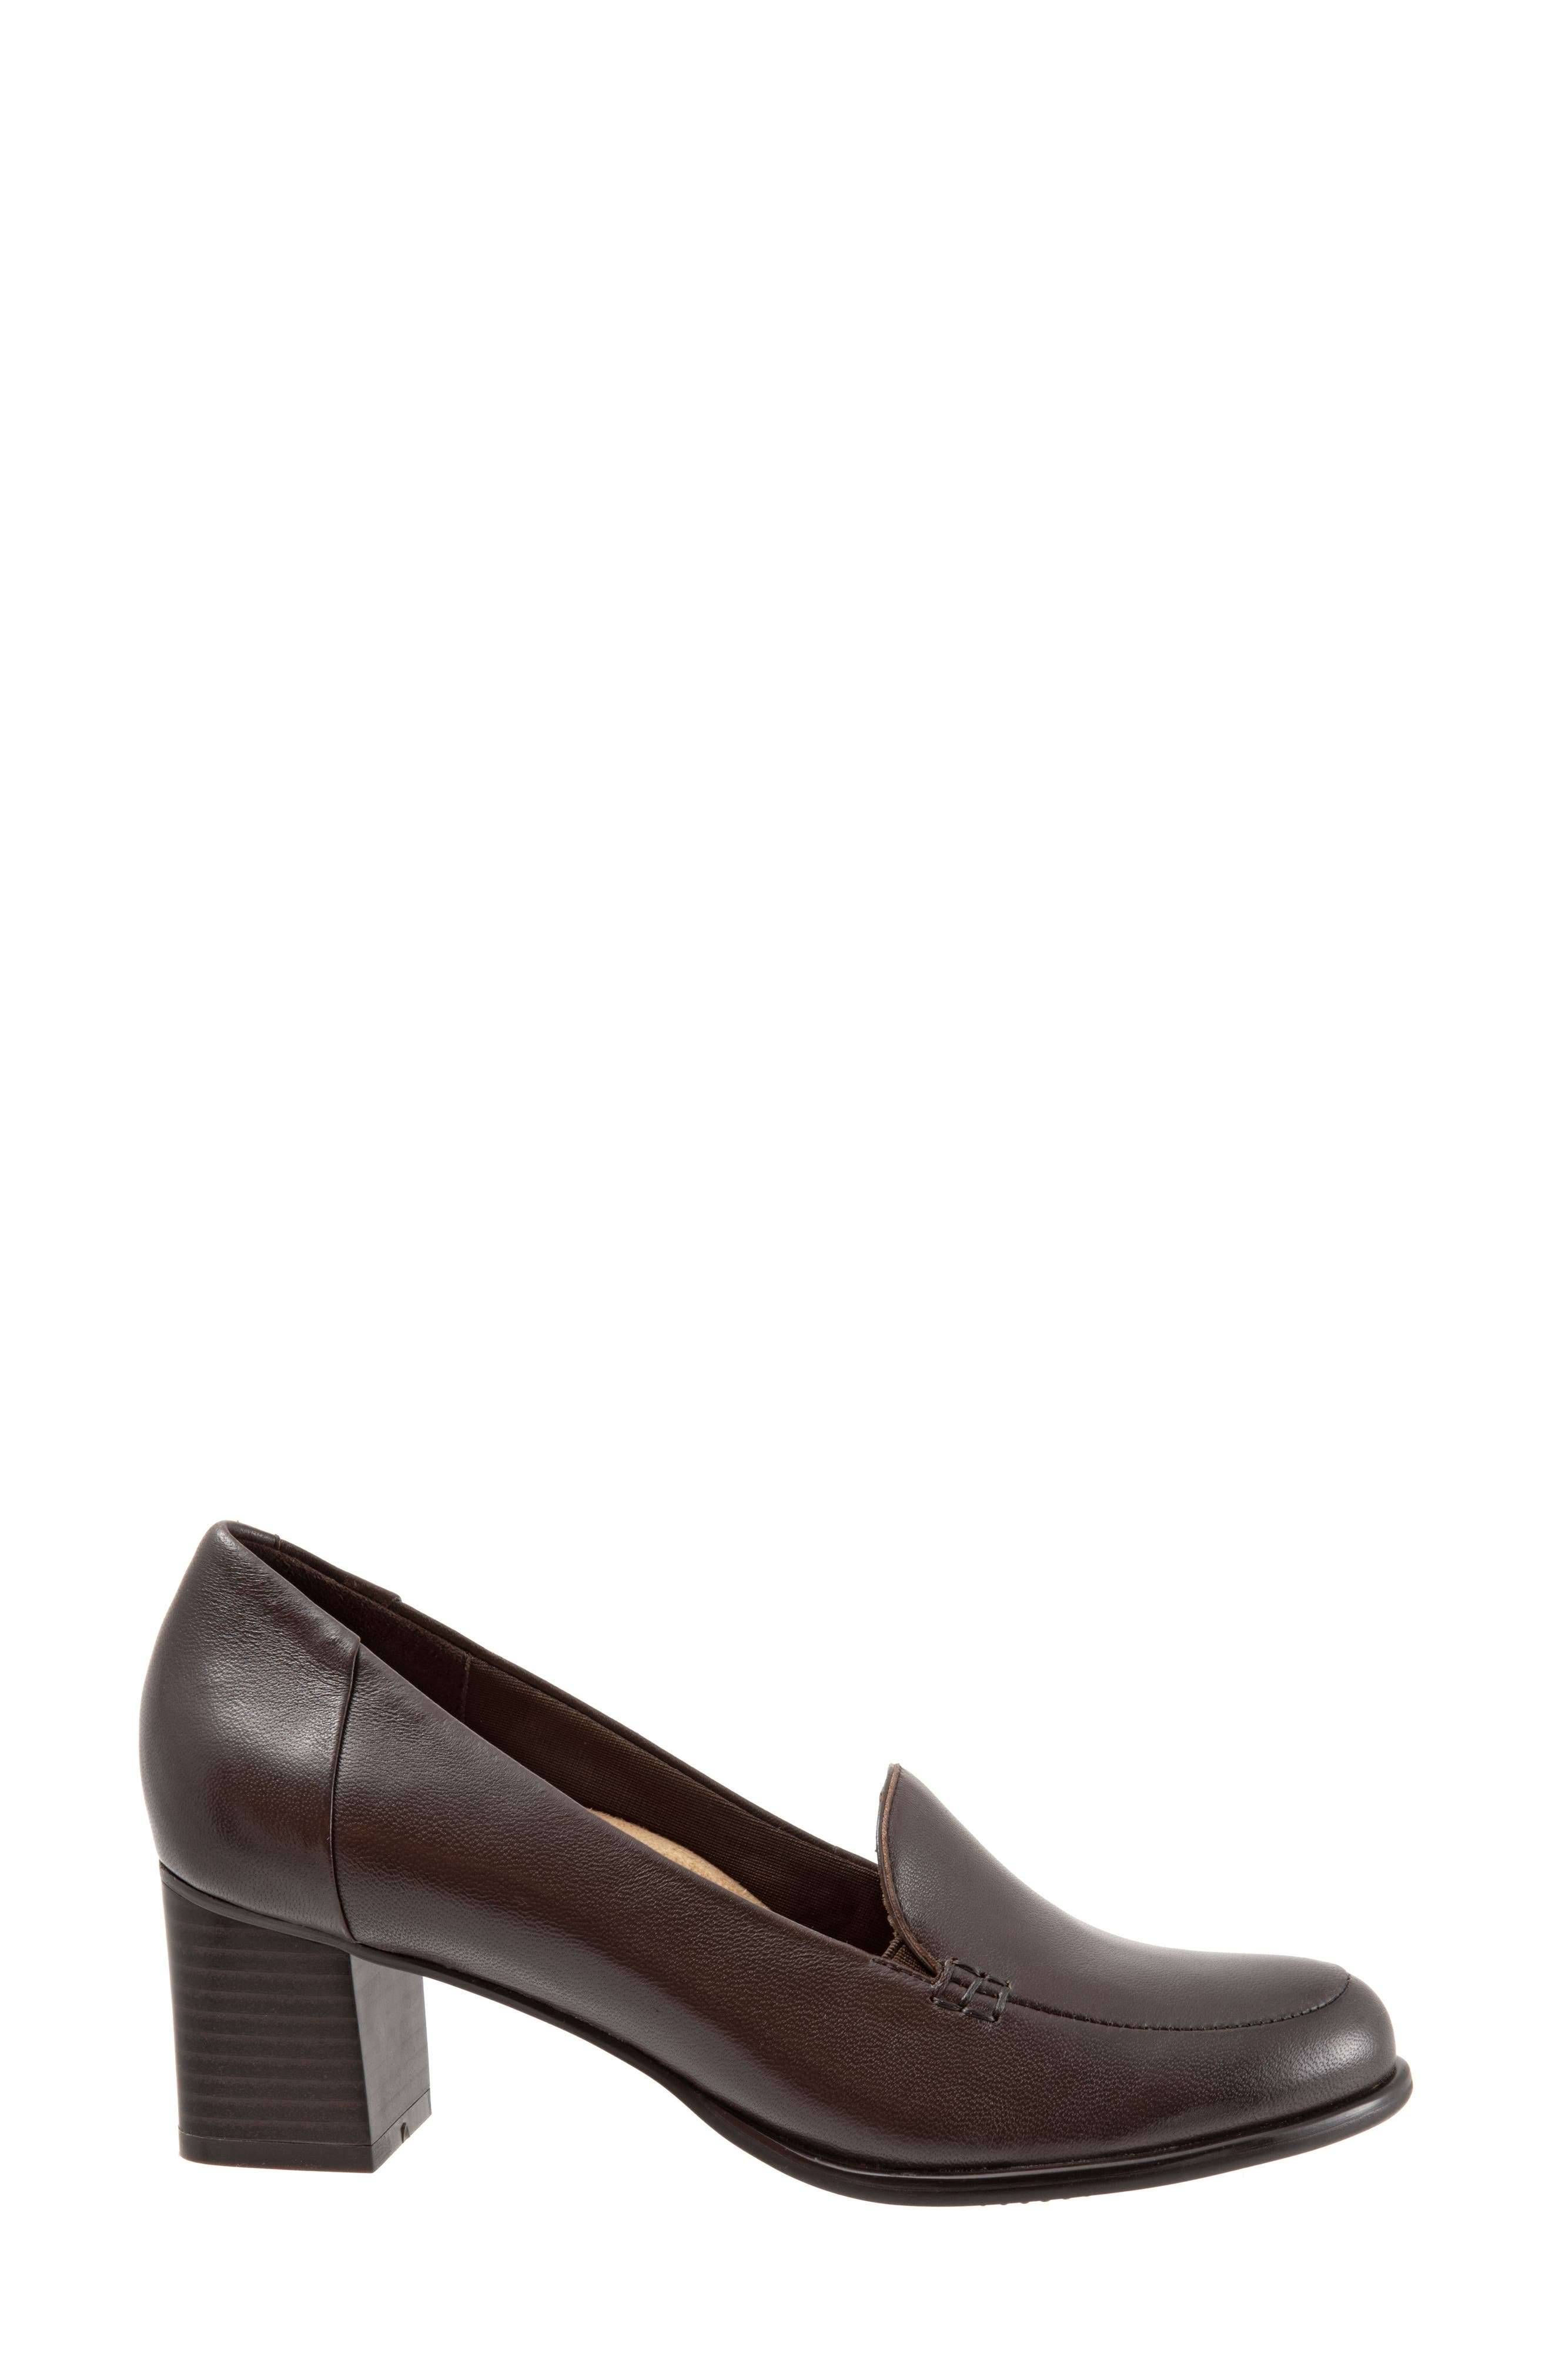 Quincy Loafer Pump,                             Alternate thumbnail 3, color,                             DARK BROWN LEATHER